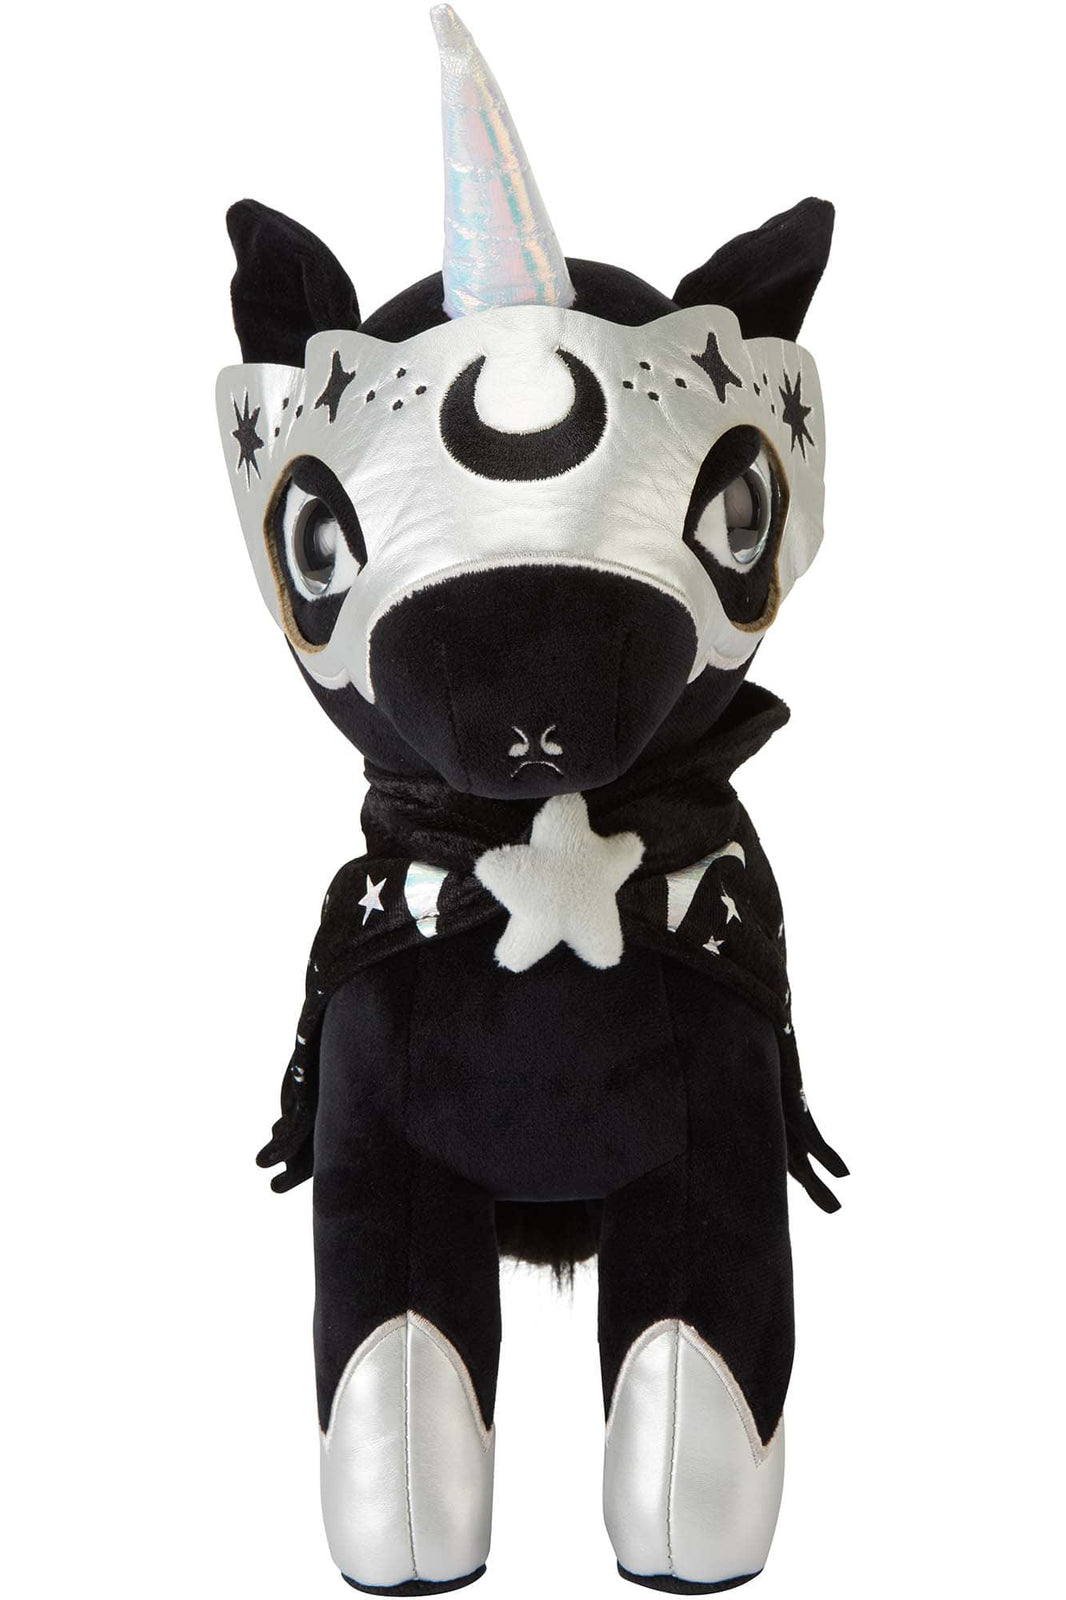 Magus Myth Plush Toy